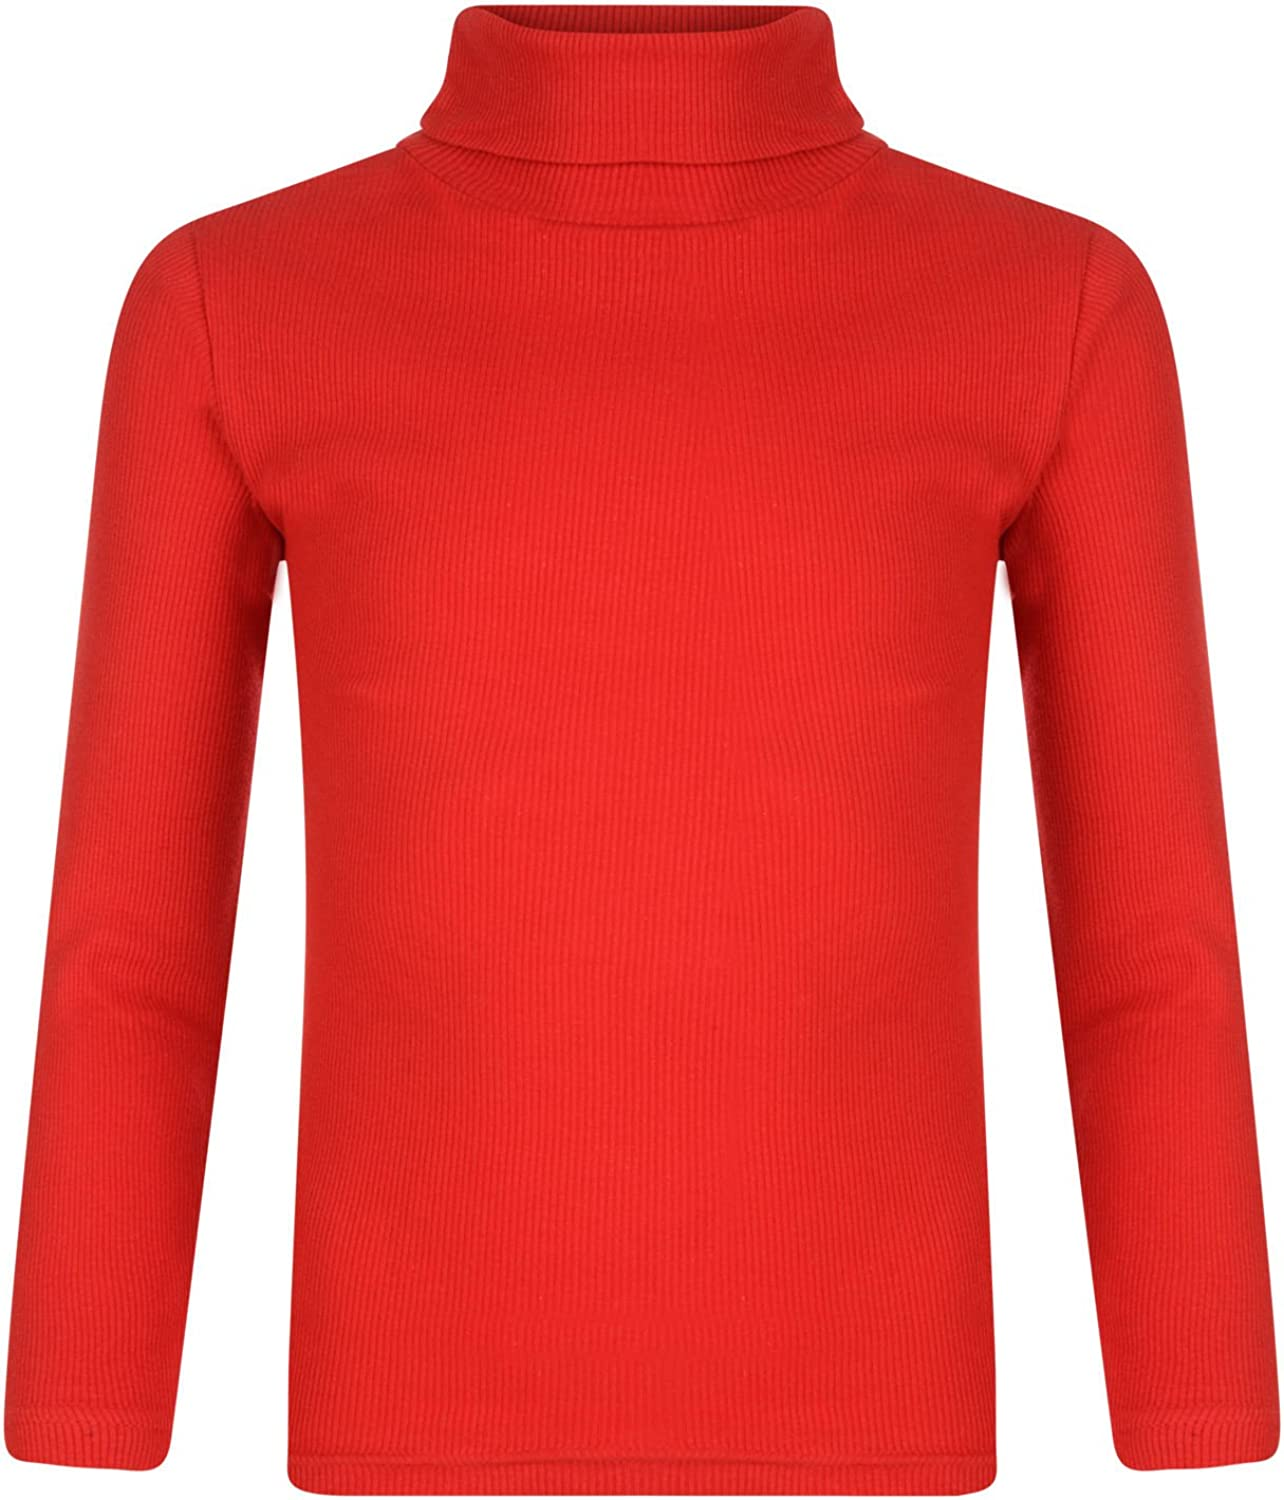 Girls Roll Neck Ribbed Knitted Longsleeve Top Polo Turtle Neck Cotton Jumper